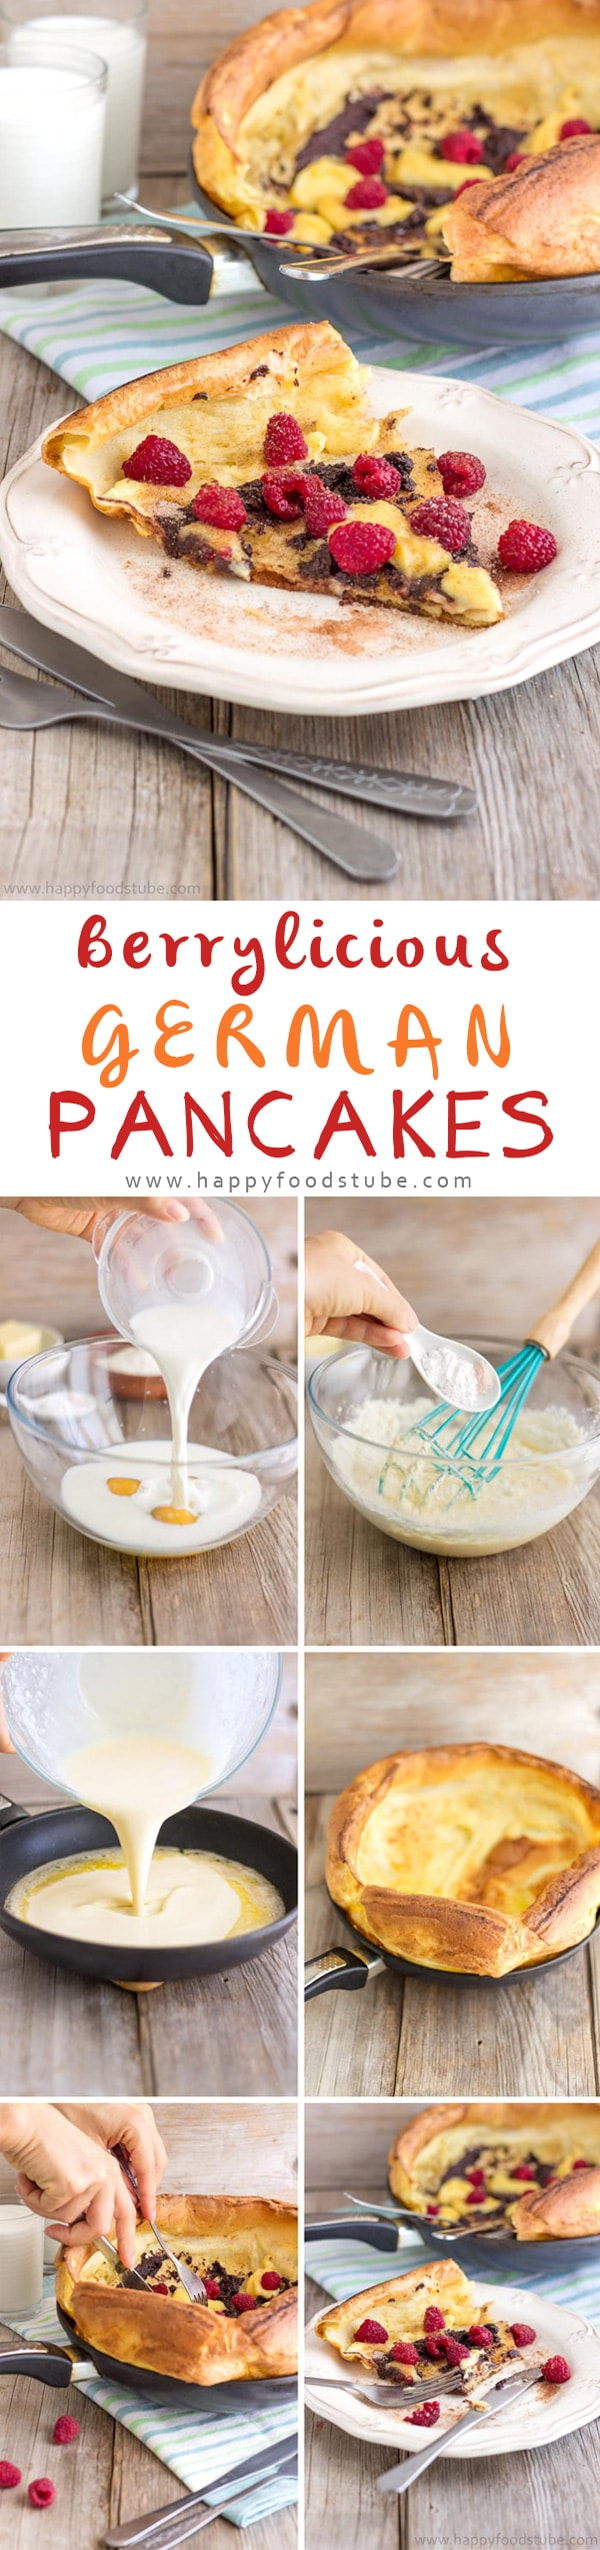 German Pancakes Recipe (Dutch Baby Pancakes) are the best pancakes you can get. Buttery, oven baked pancakes topped with raspberries, lemon curd & melted chocolate. Step by step recipe